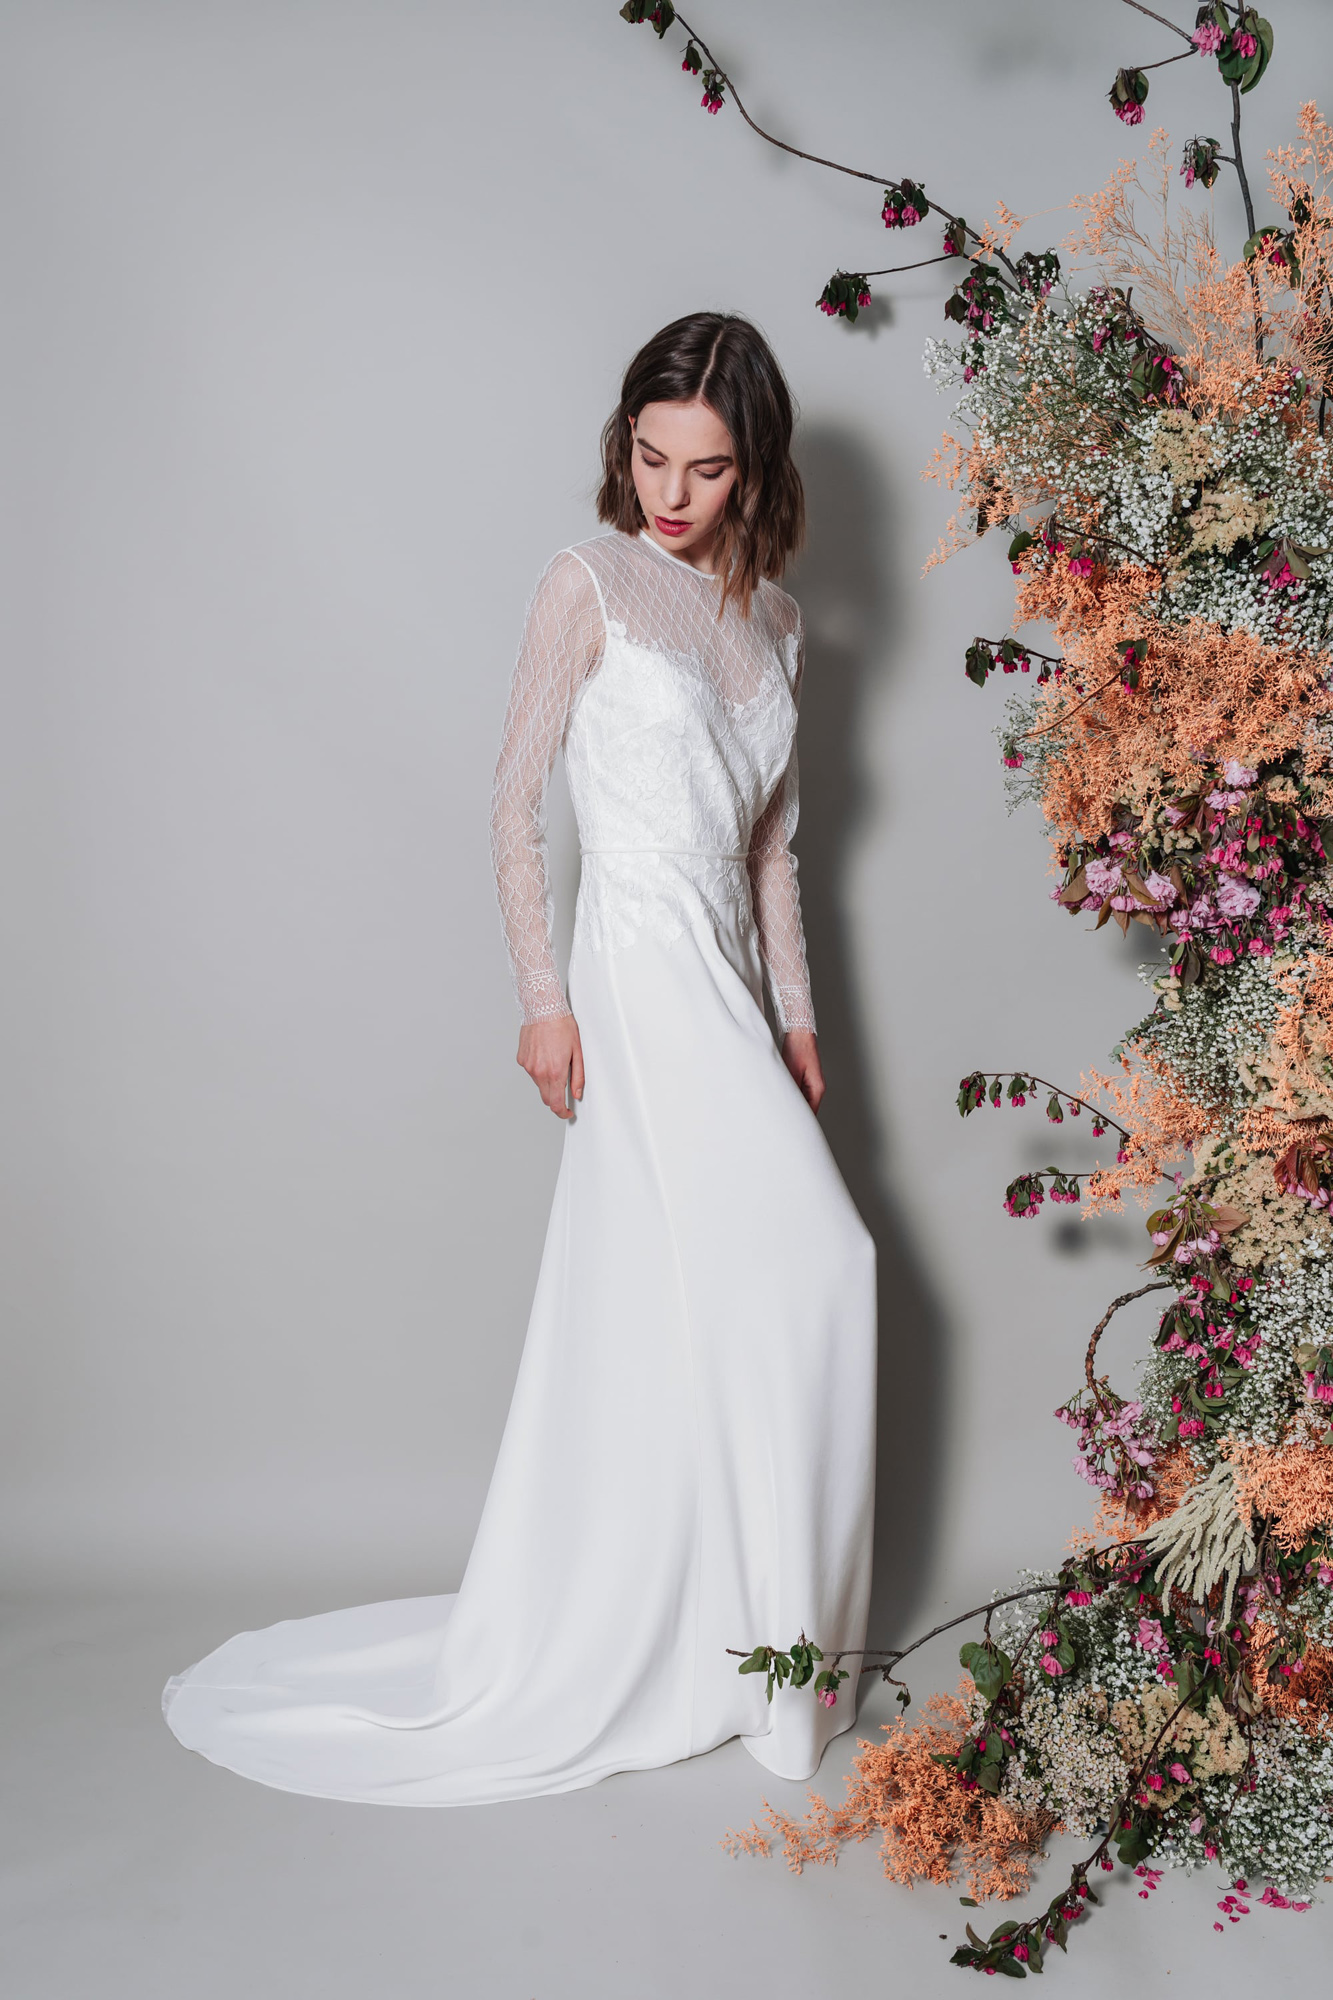 Kate-Beaumont-Sheffield-Geranium-Applique-Lace-Silk-Modern-Minimal-Long-Sleeved-Wedding-Gown-10.jpg